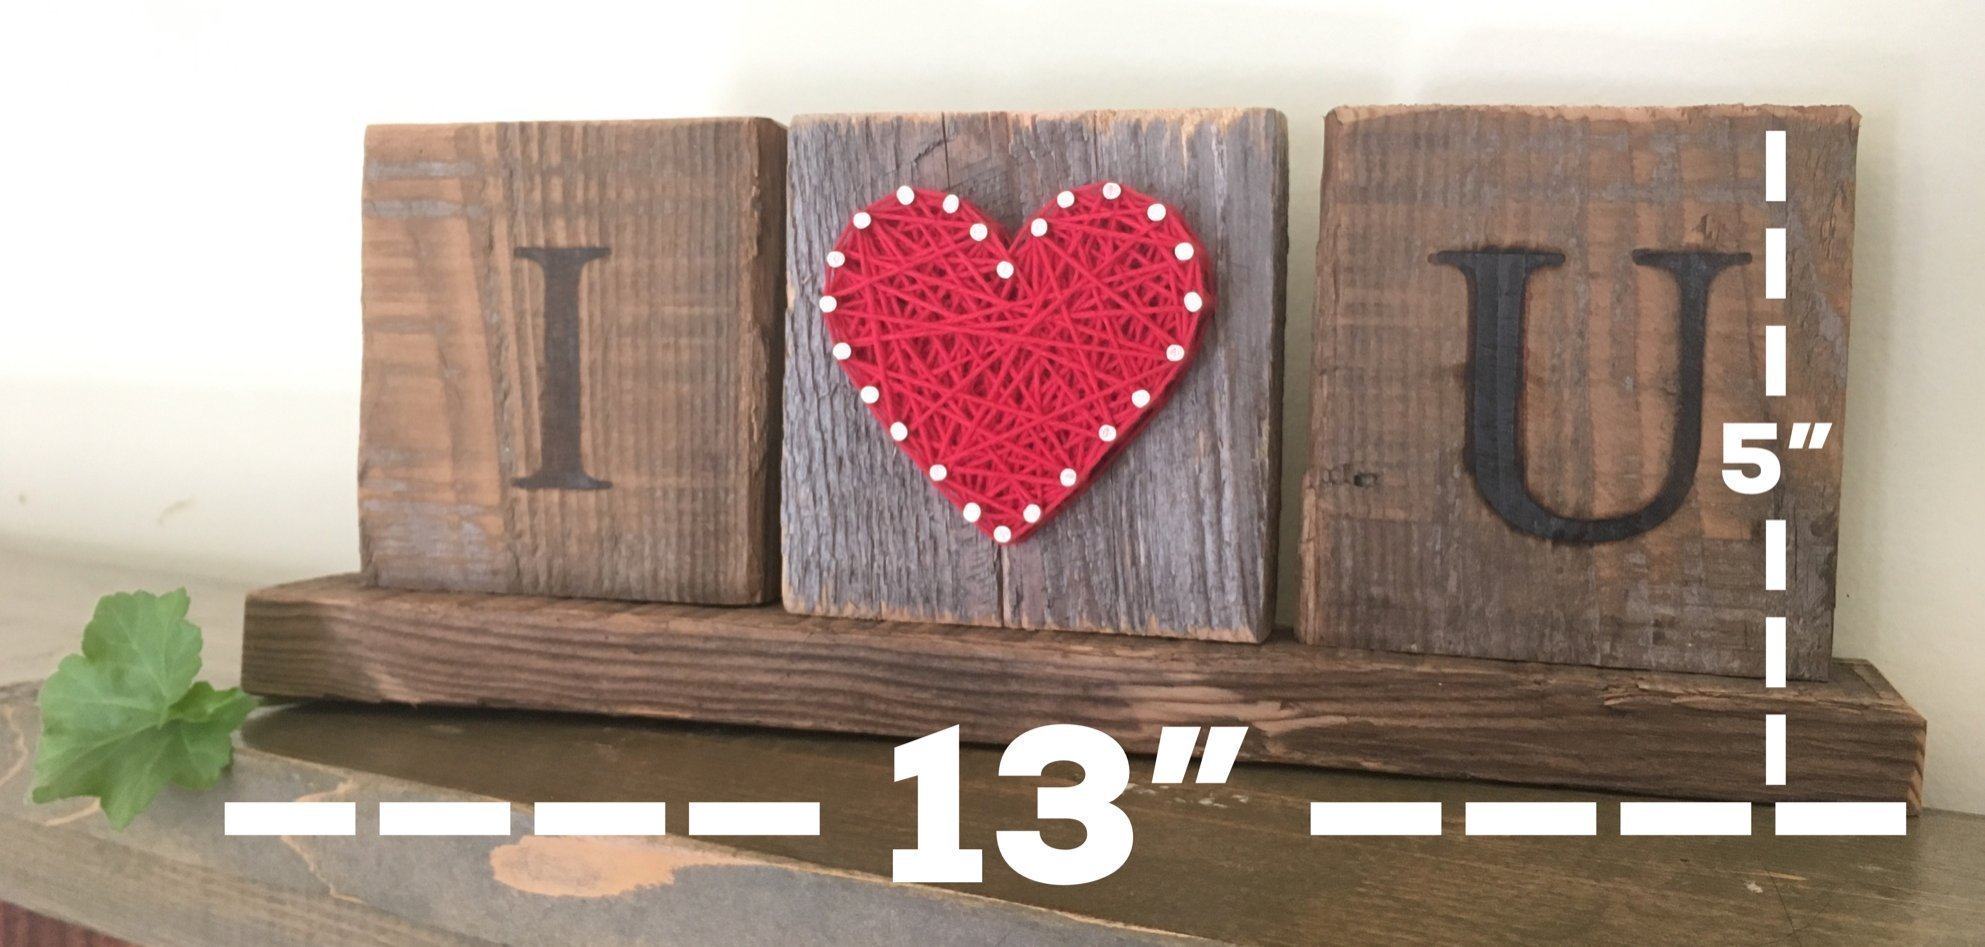 I Love you wooden desk gift. String art love sign. Great gift for Anniversary, birthday, graduation and just because gift by Nail it Art. by Nail it Art (Image #3)